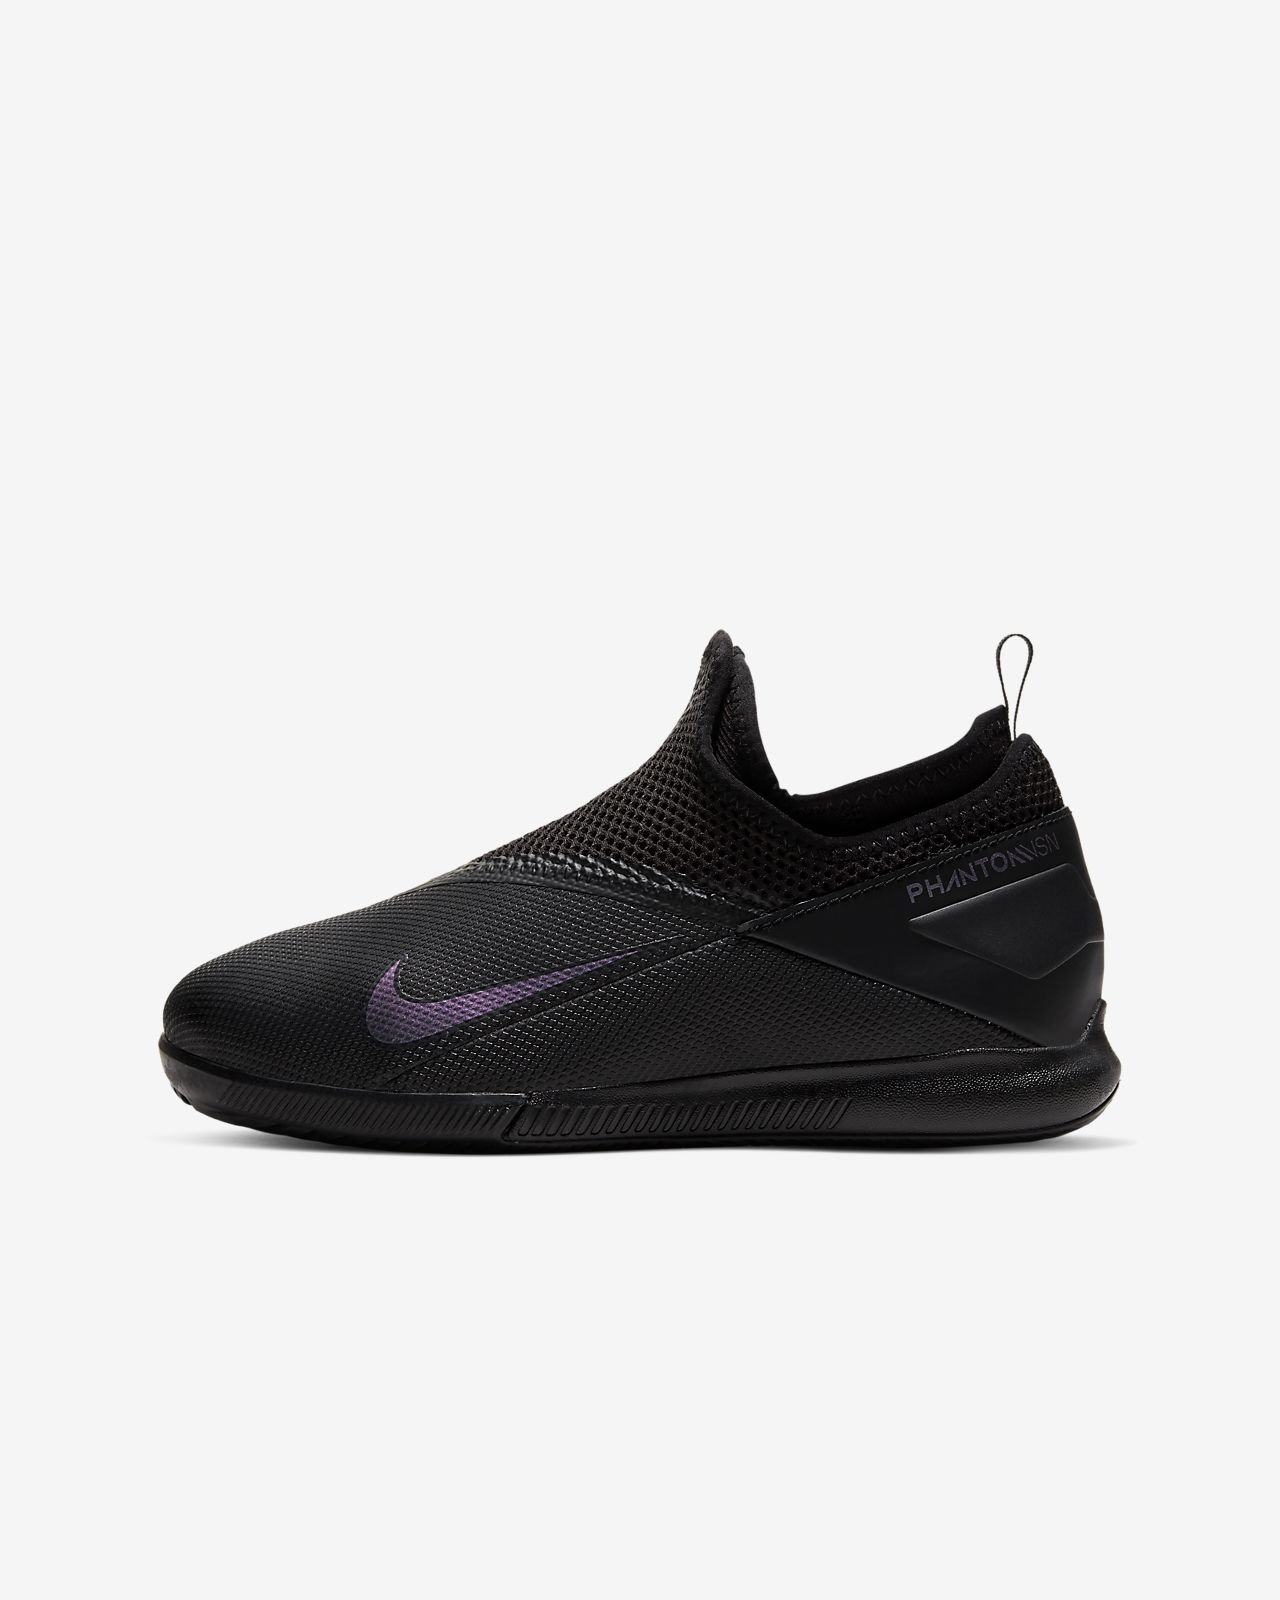 Nike Jr. Phantom Vision 2 Academy Dynamic Fit IC YoungerOlder Kids' Indoor Court Football Shoe